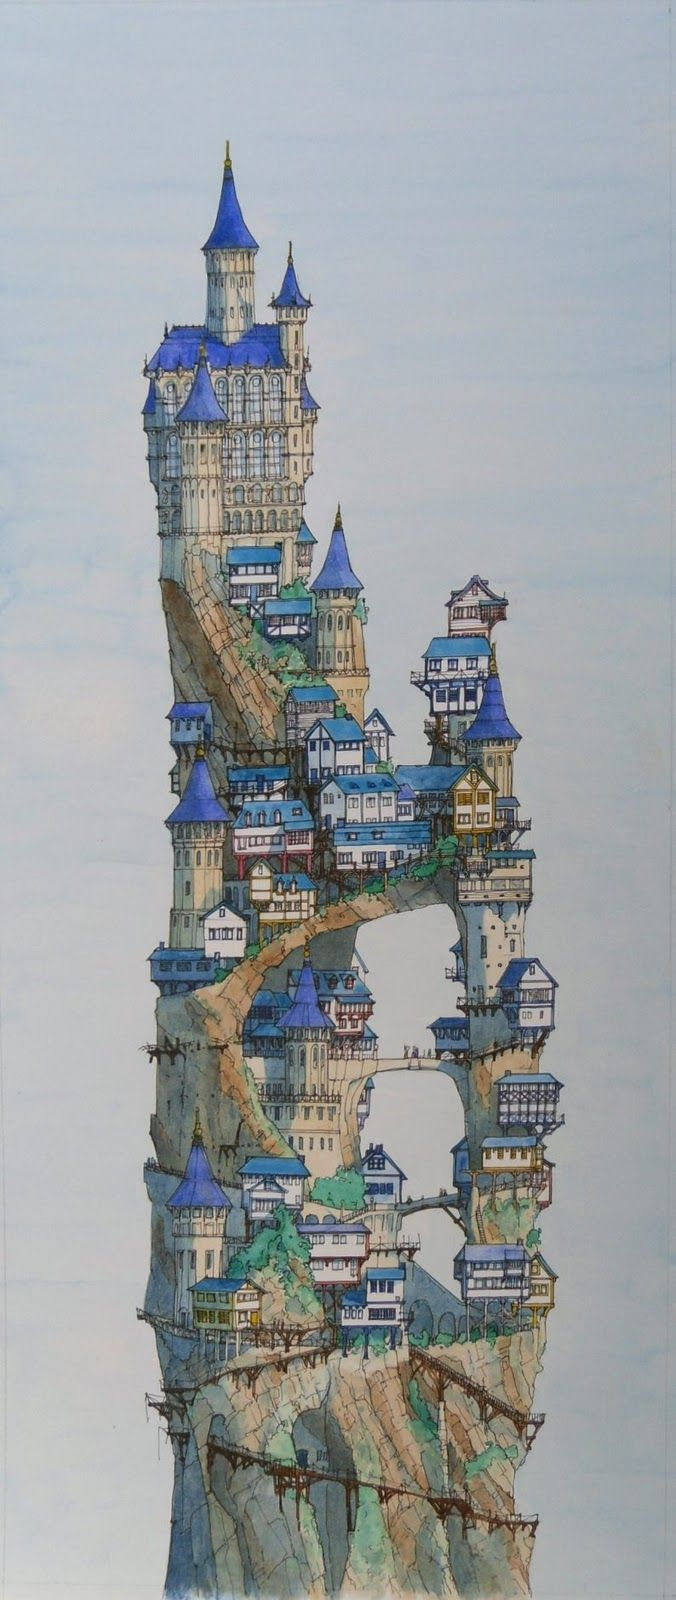 One of a pair of my personal favourites #fantasy #castle